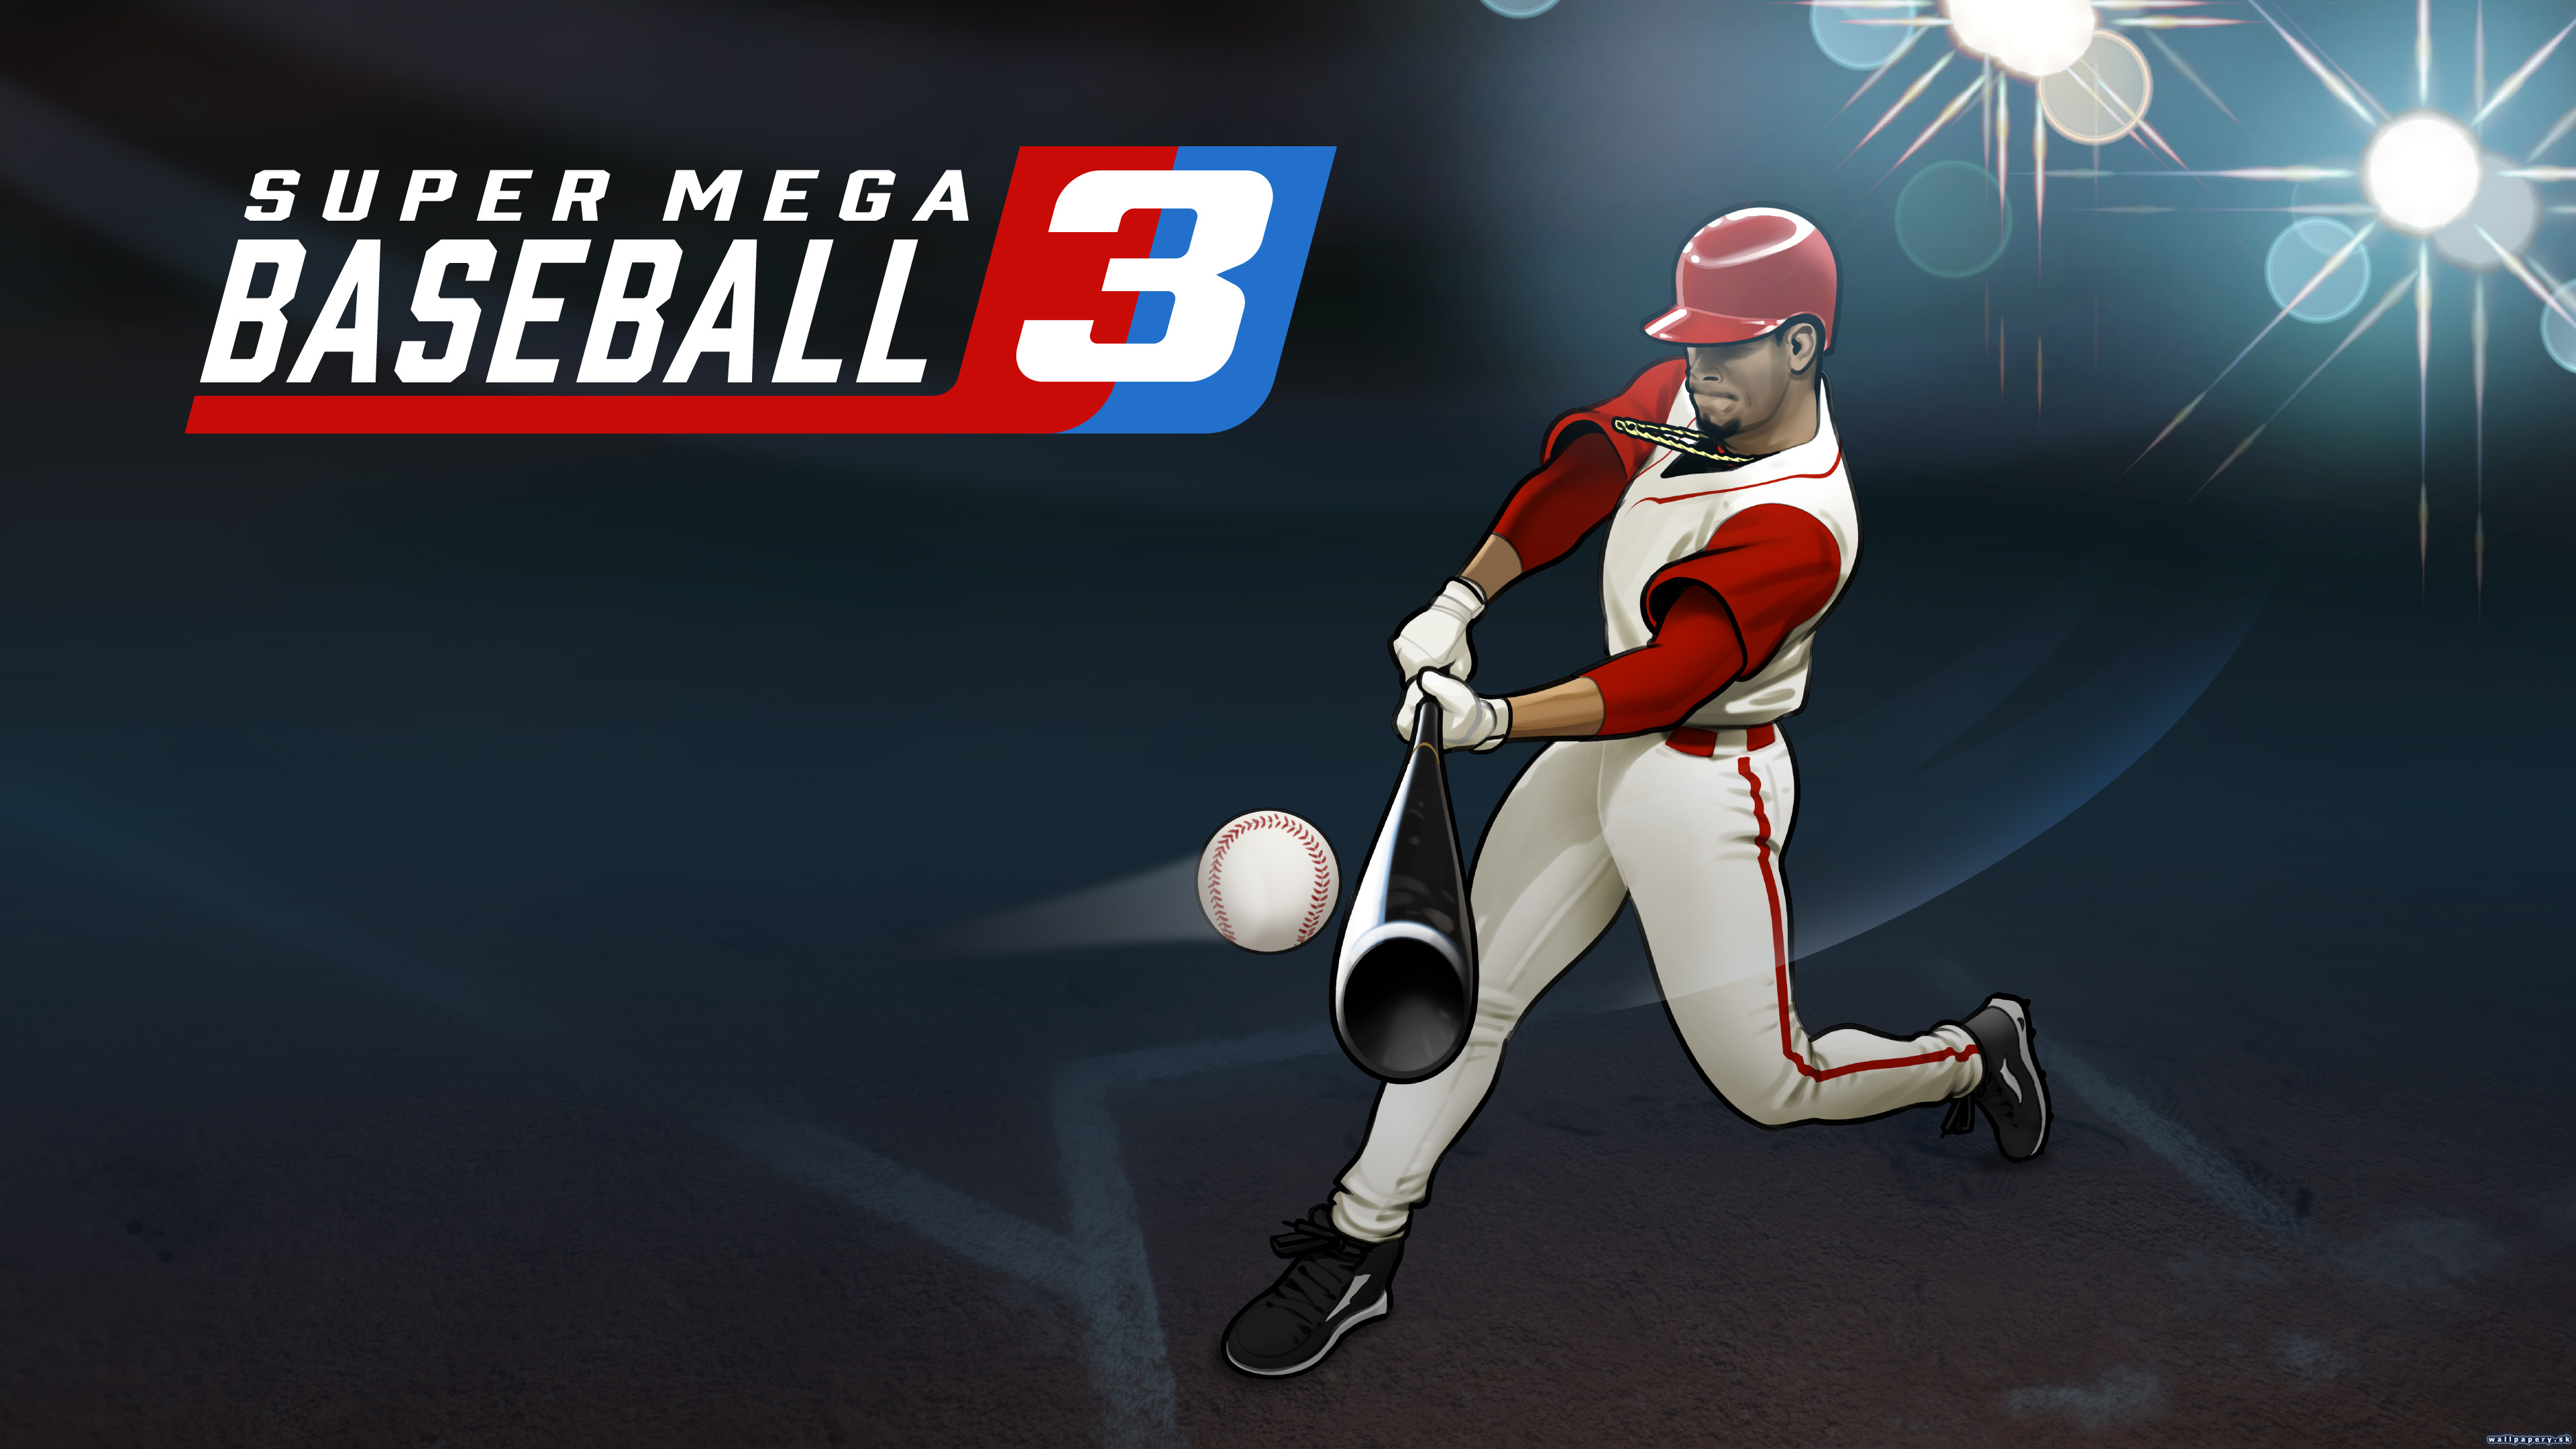 Super Mega Baseball 3 - wallpaper 1